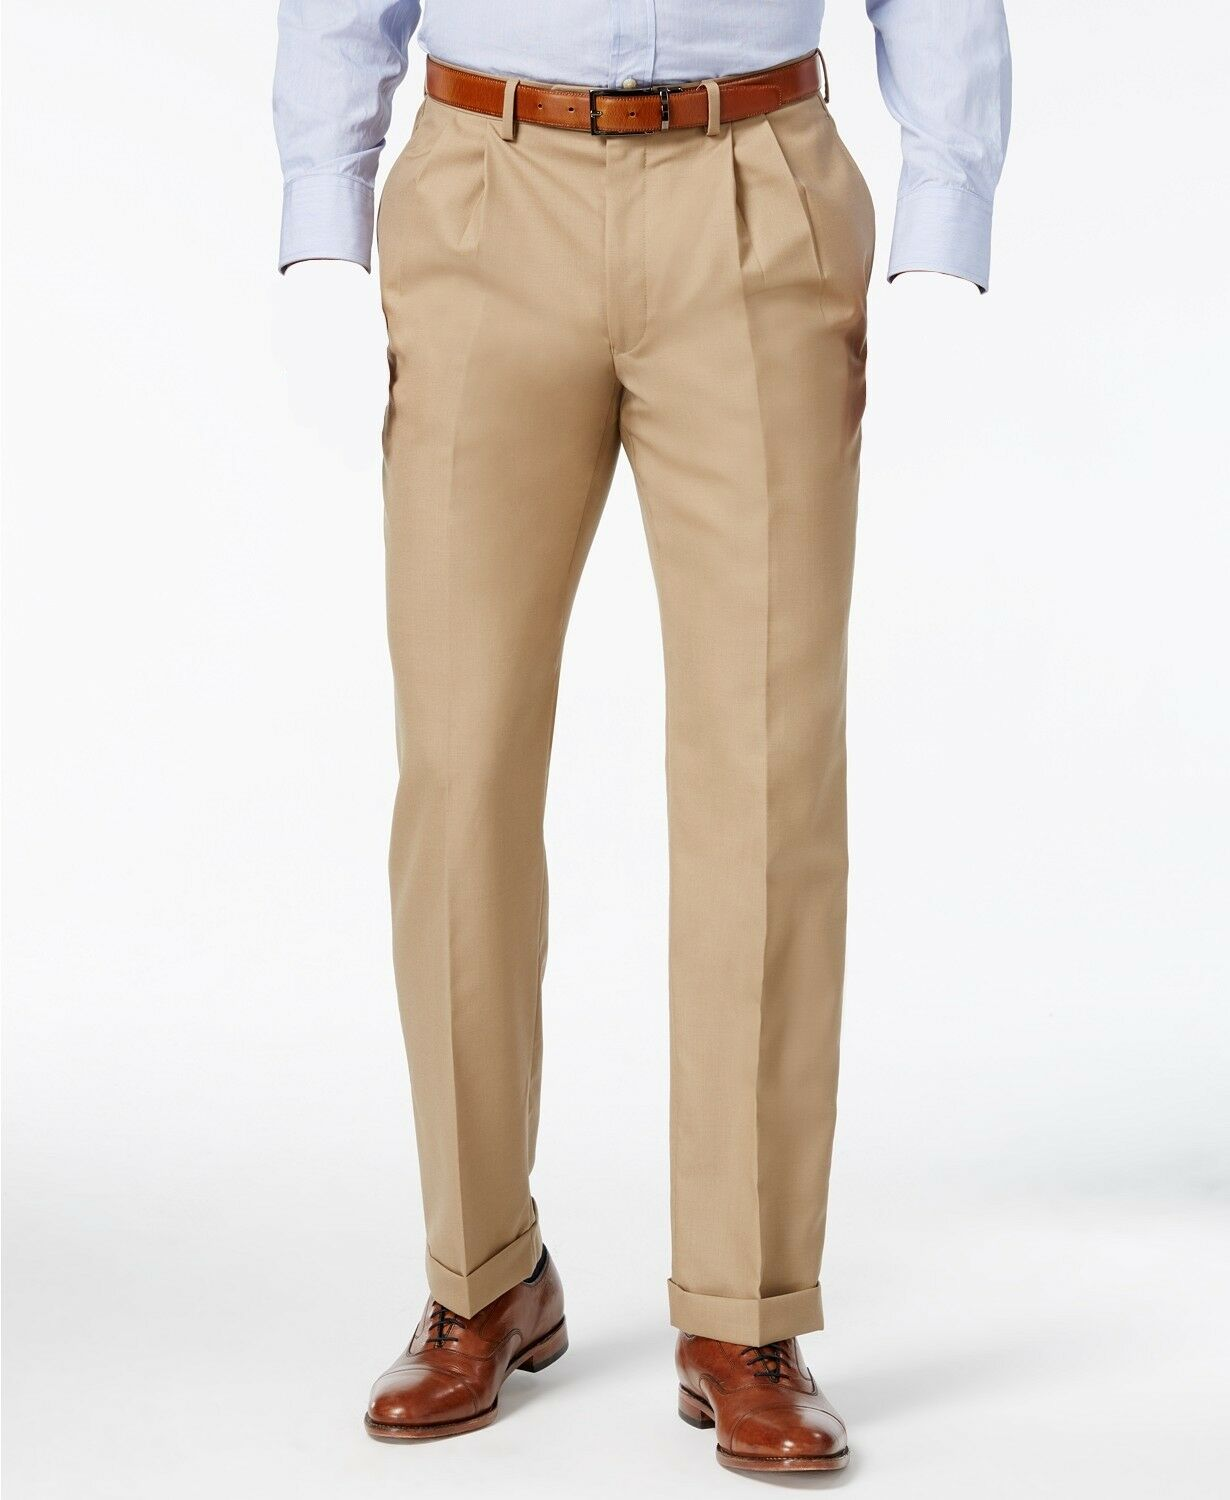 RALPH LAUREN Men SLIM Fit Trousers BEIGE PLEATED DRESS PANTS 40W 34L